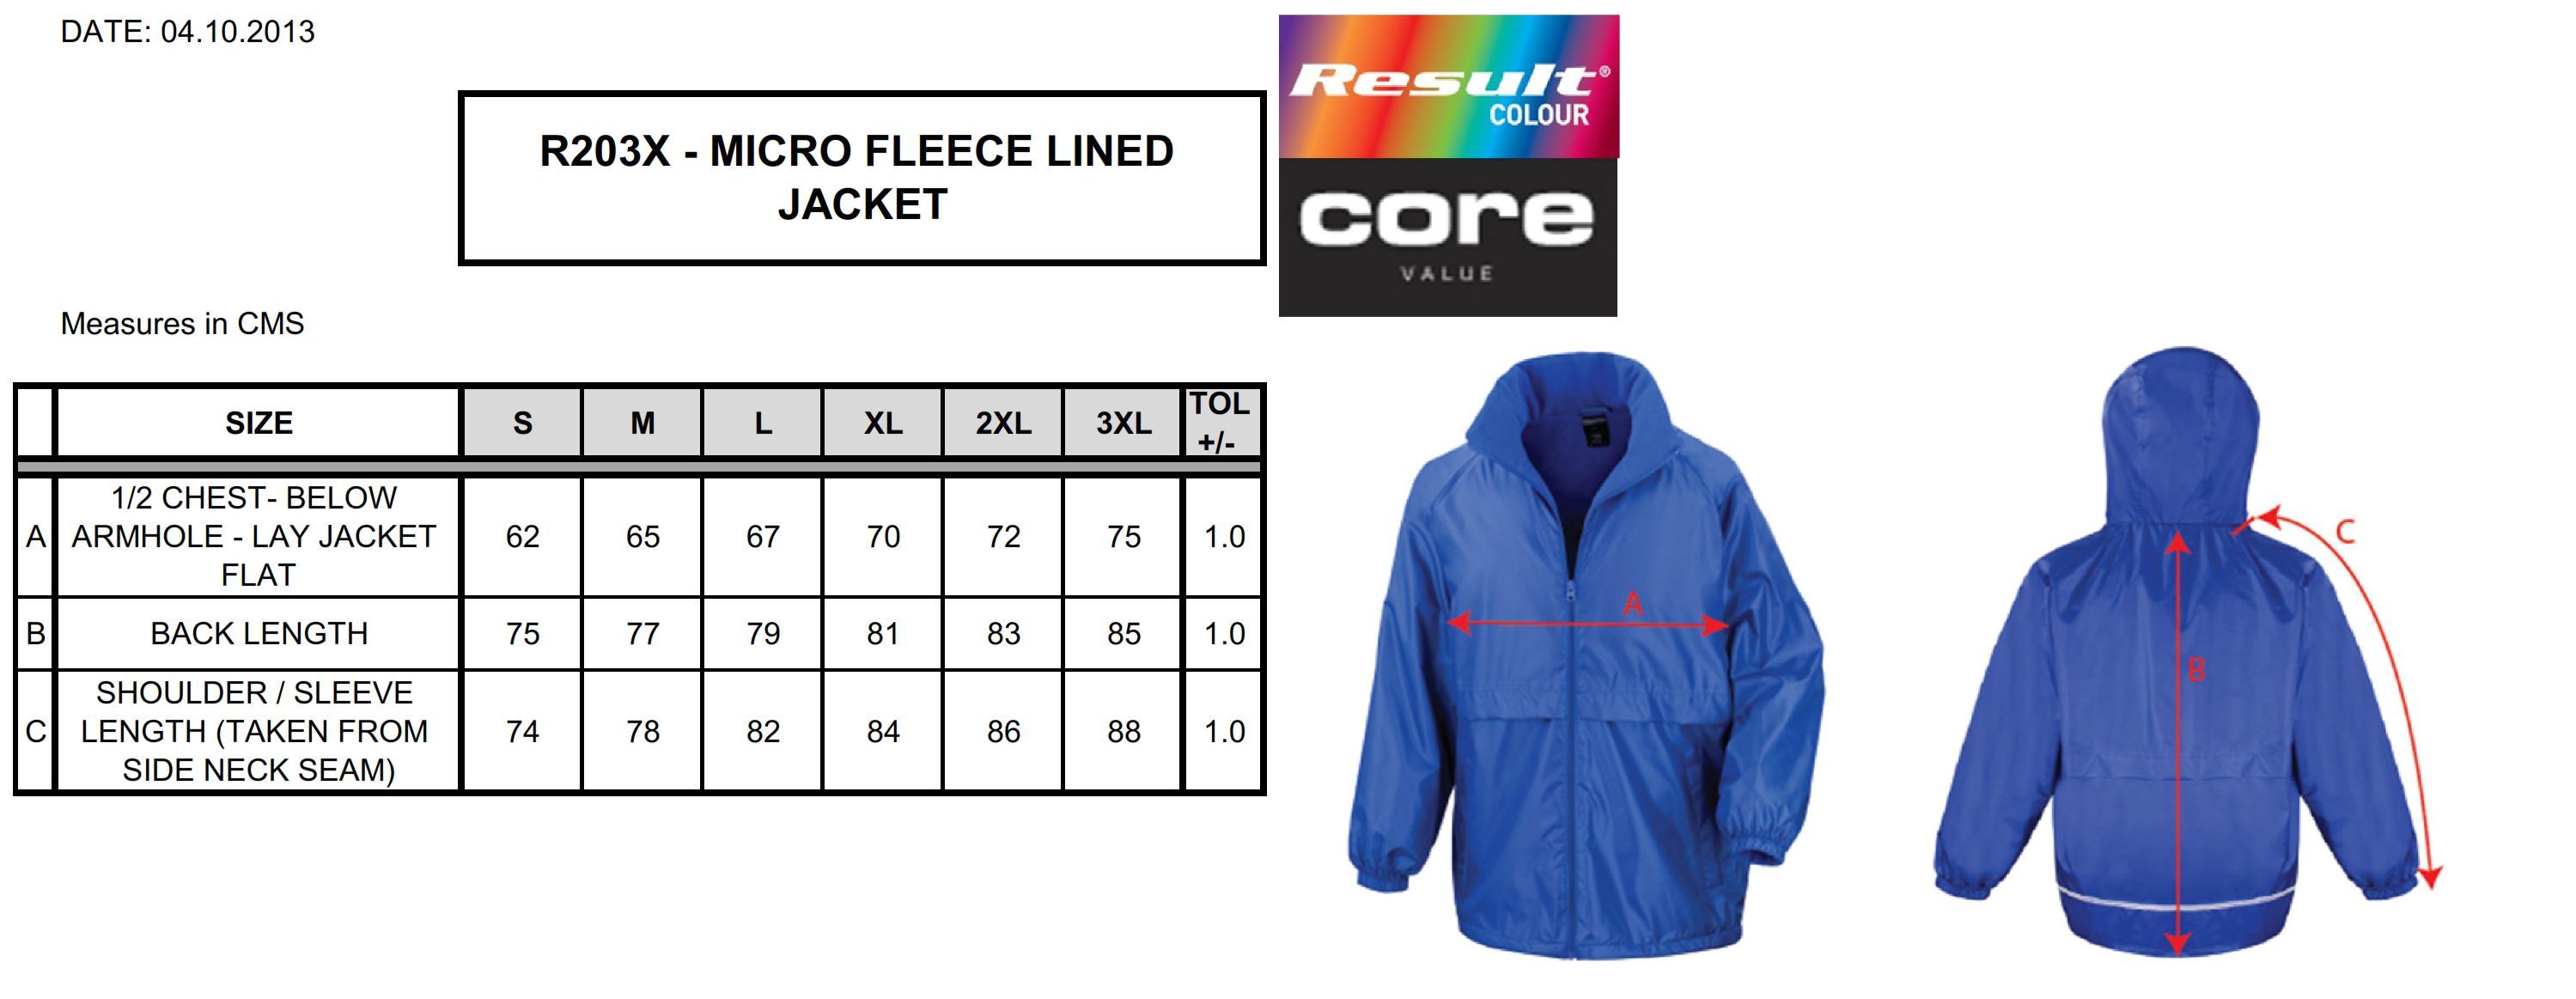 Result: CORE Microfleece Lined Jacket R203X